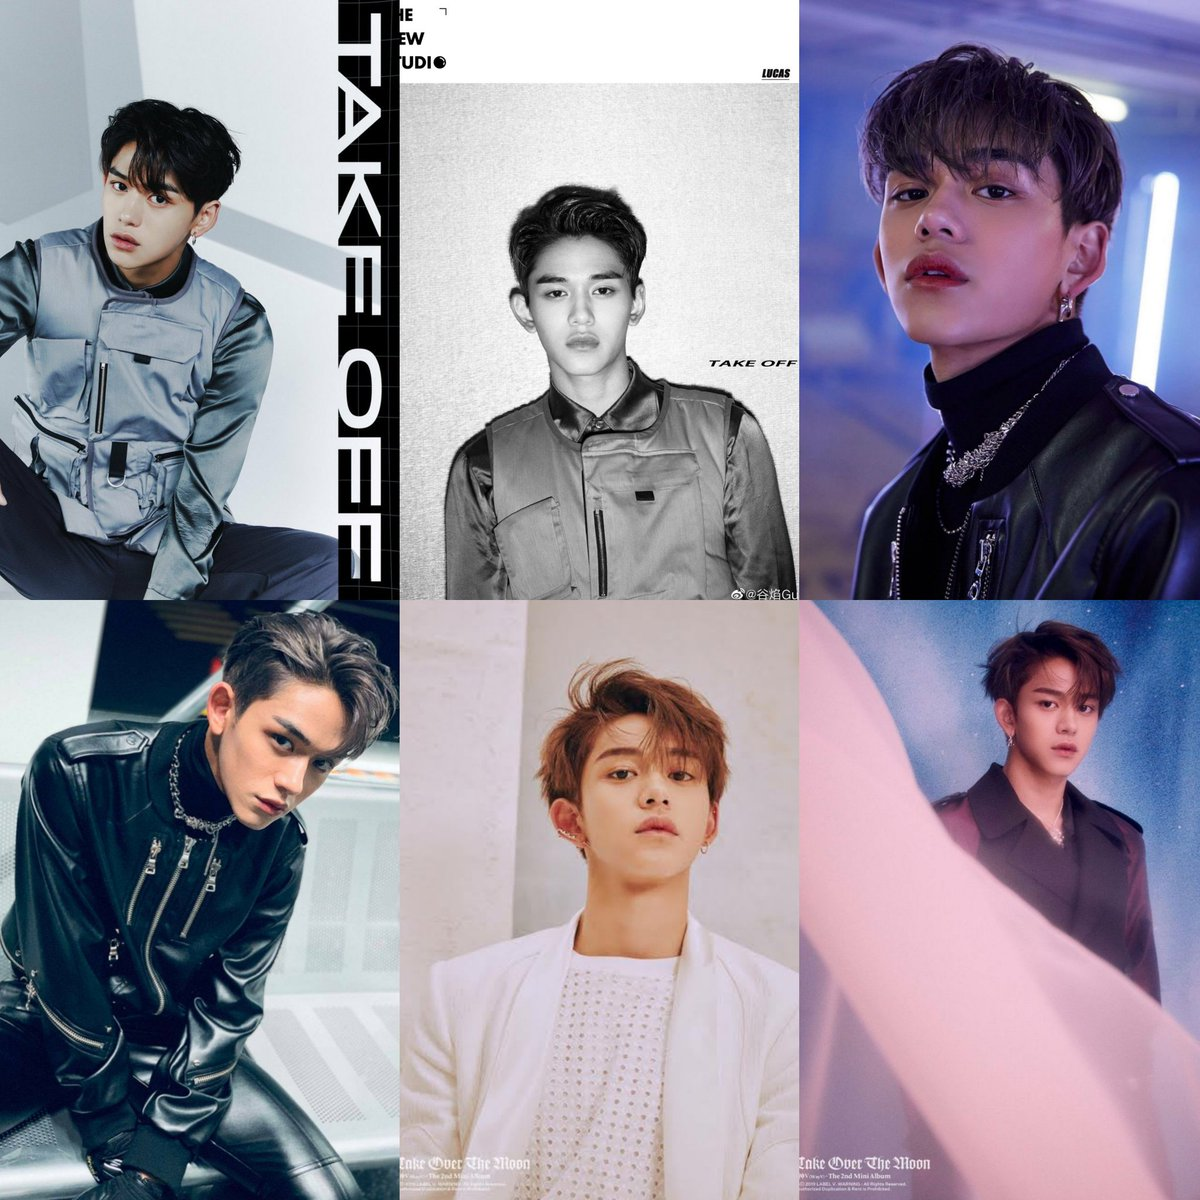 TAKE OFF AND TAKE OVER THE MOON ERA These were the eras that caught my attention. 😍😍💛💛  Lucas can pull off any concept. 🥰   #HAPPYLUCASDAY #黄旭熙0125生日快乐 #우리의_에너지_루카스_생일축하해 #LUMISLOVELUCAS #Lucas22ndwithlumis